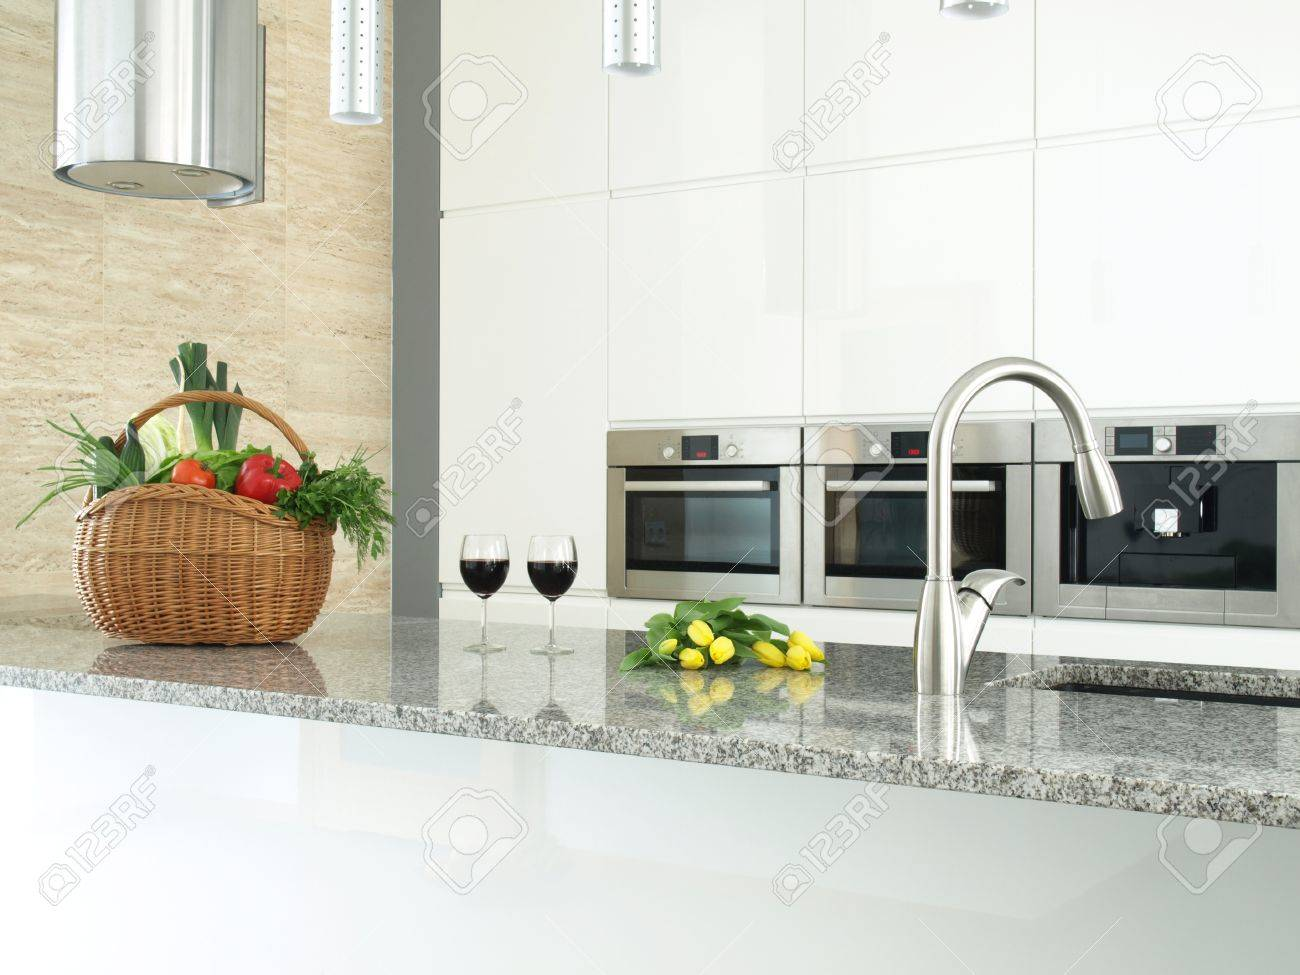 Modern kitchen interior with vegetables, glasses of wine and flowers Stock Photo - 12515205